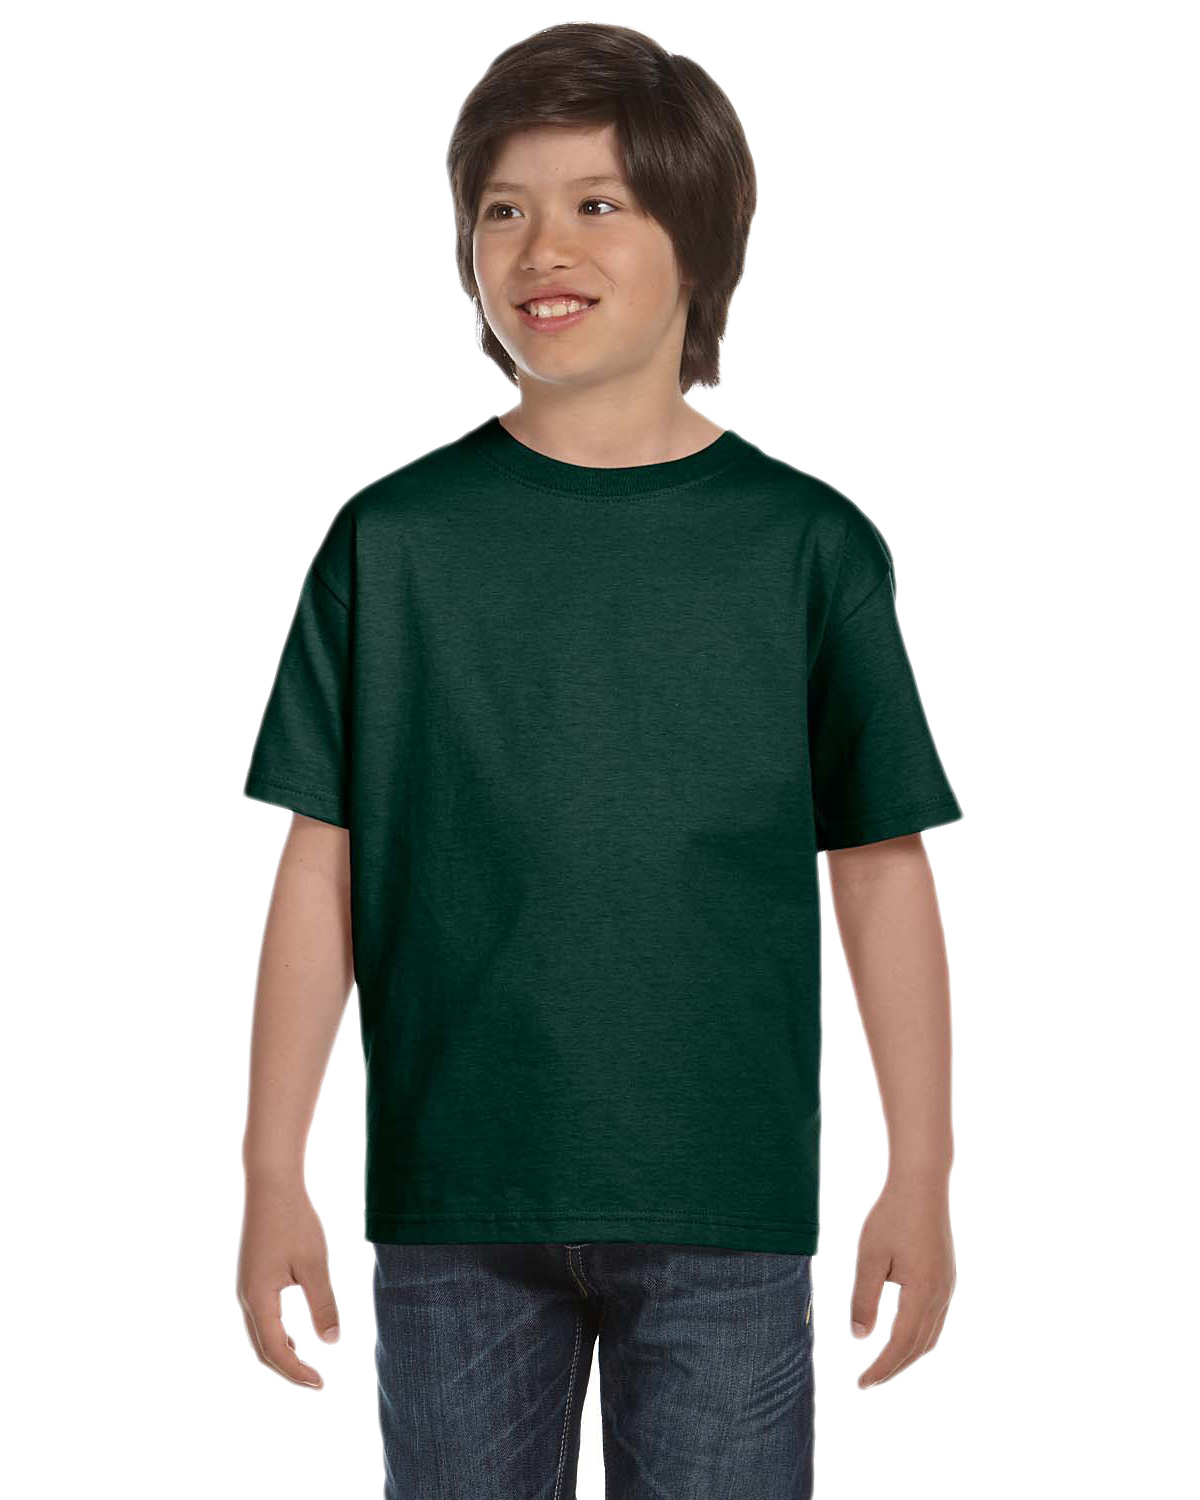 Hanes 5380 Boys 6.1 oz. Beefy-T Deep Forest at GotApparel